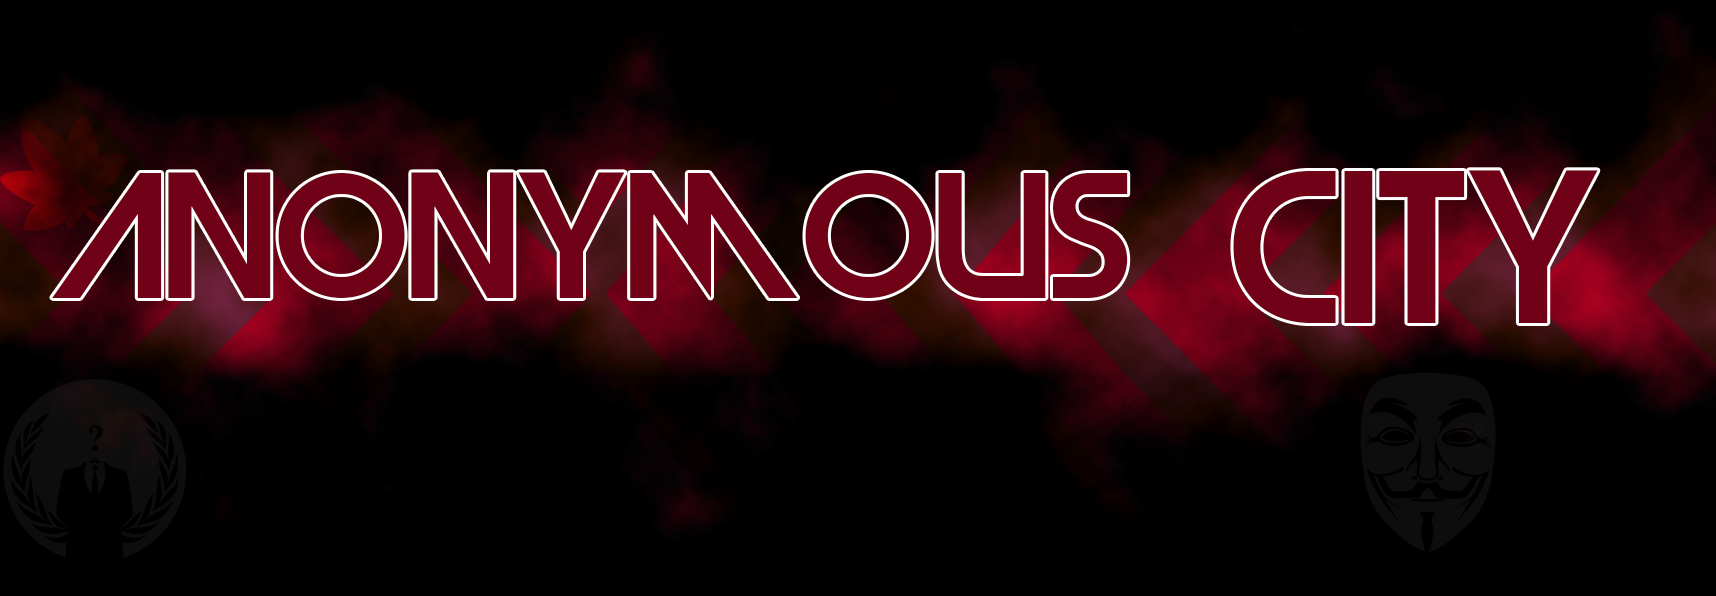 ANONYMOUS_CITY's Cover Photo